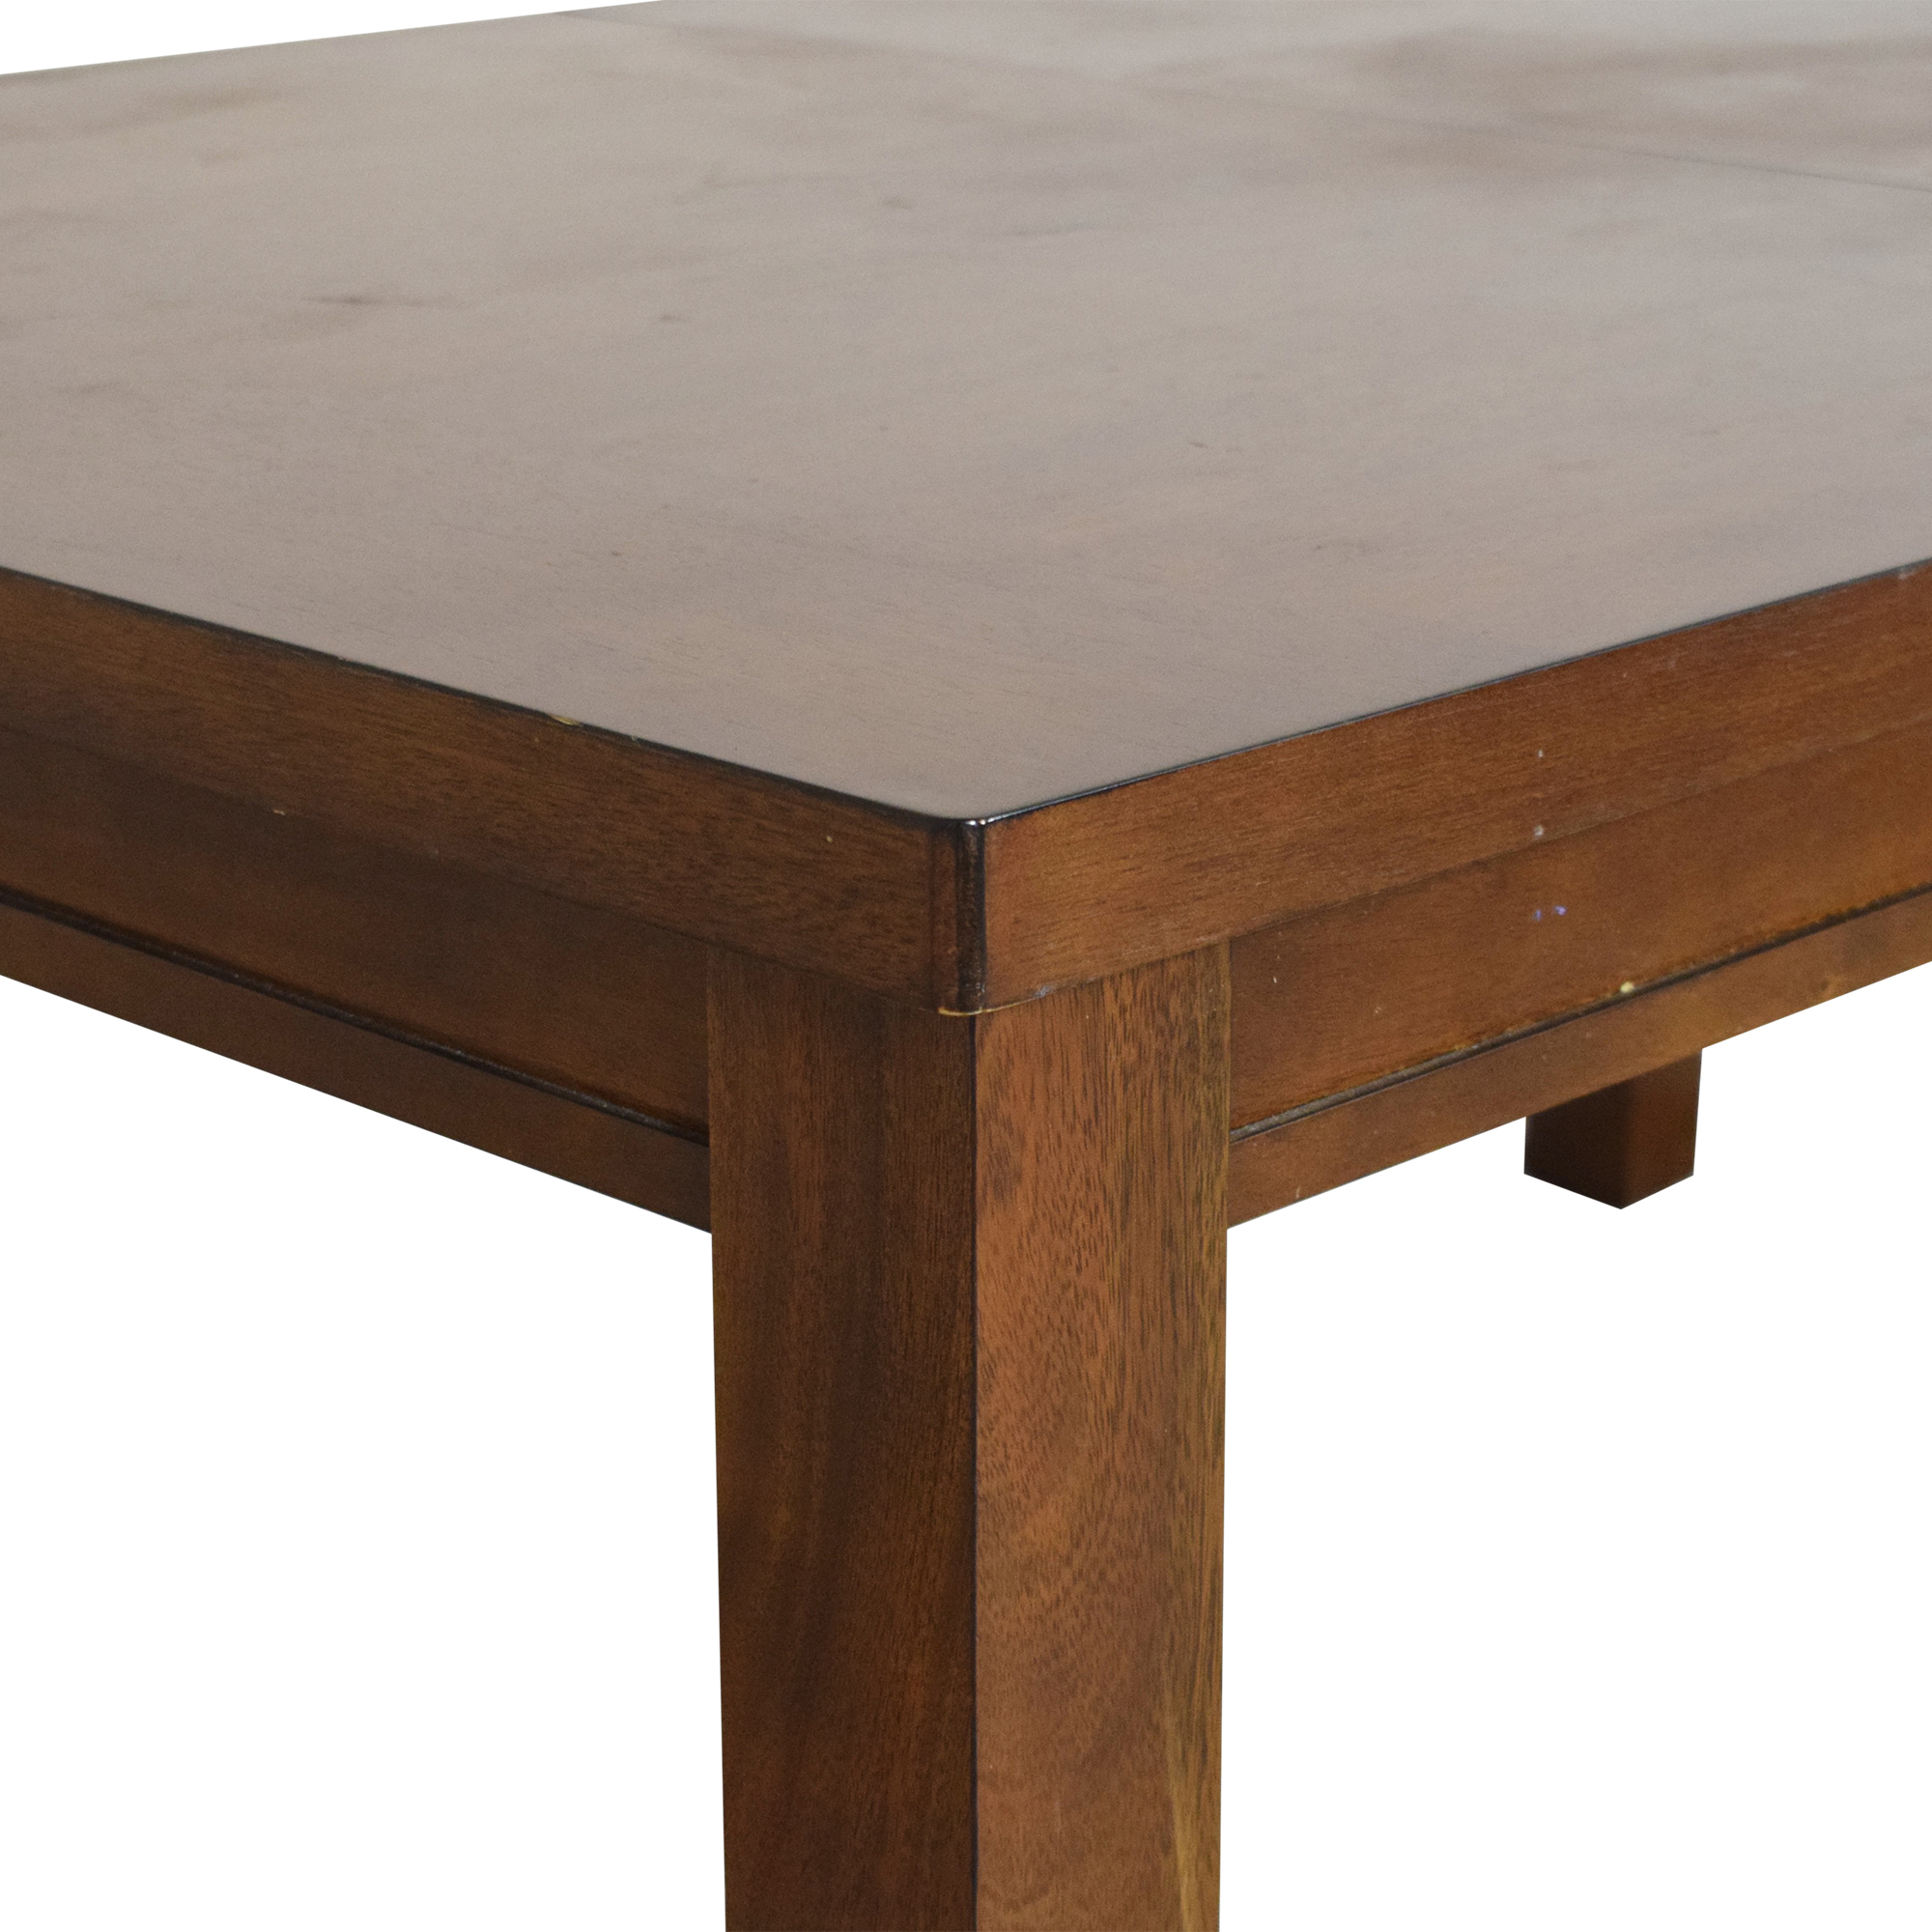 Macy's Extendable Rectangle Dining Table Macy's